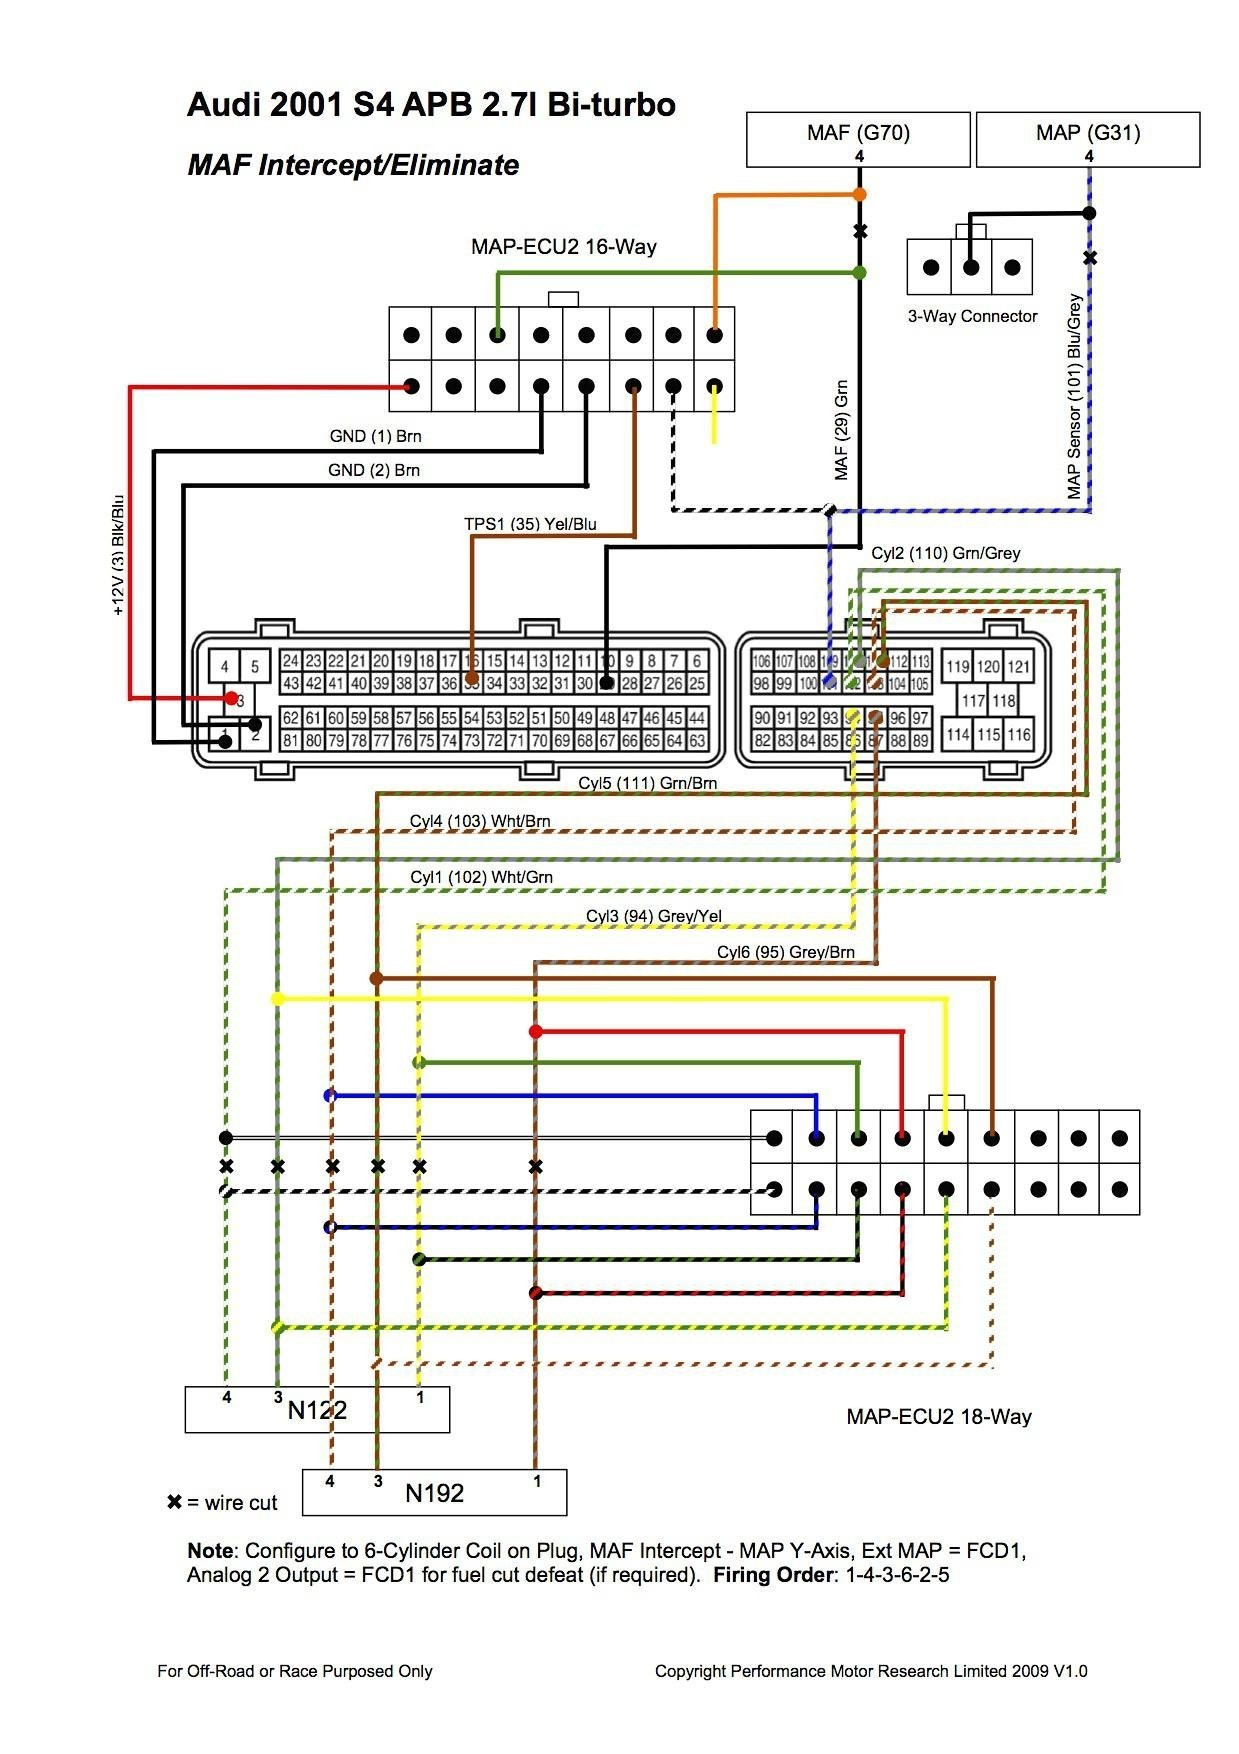 Wiring Diagram For Actuator M Mp4 - Speed Queen Washing Machine Wiring  Diagram - 2005ram.tukune.jeanjaures37.fr | 99 Park Avenue Wiring Diagram Interior |  | Wiring Diagram Resource